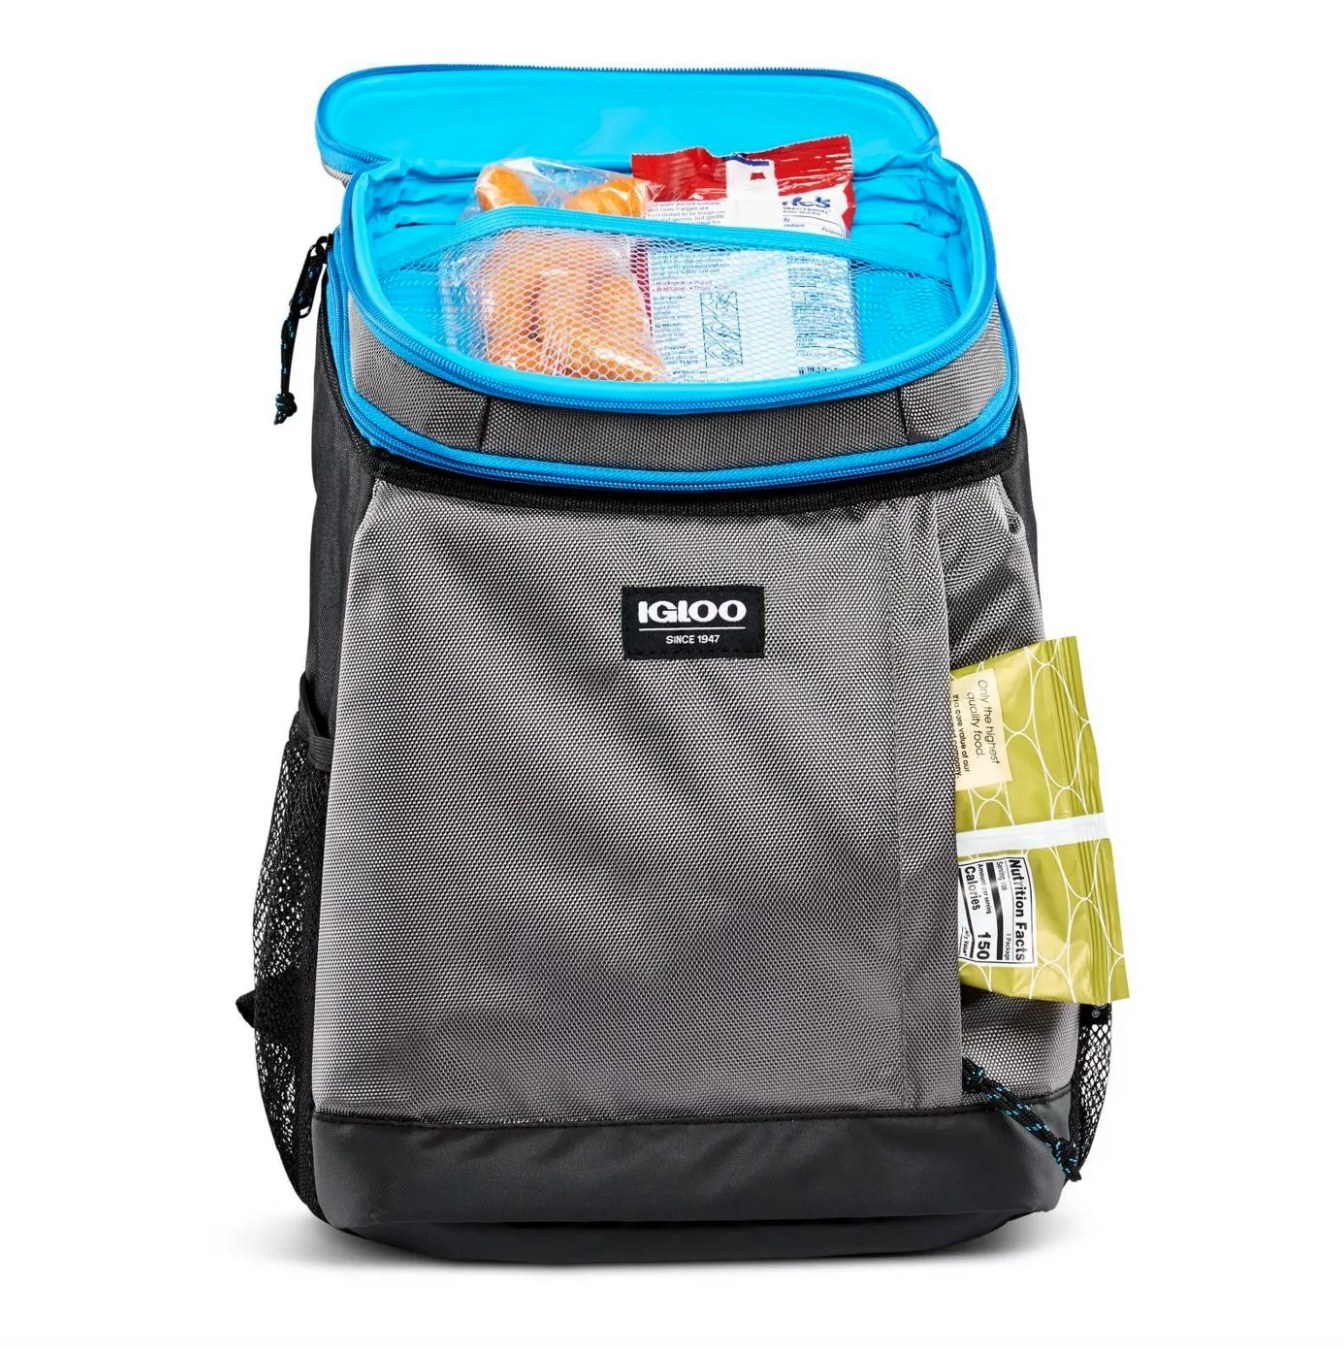 The backpack cooler